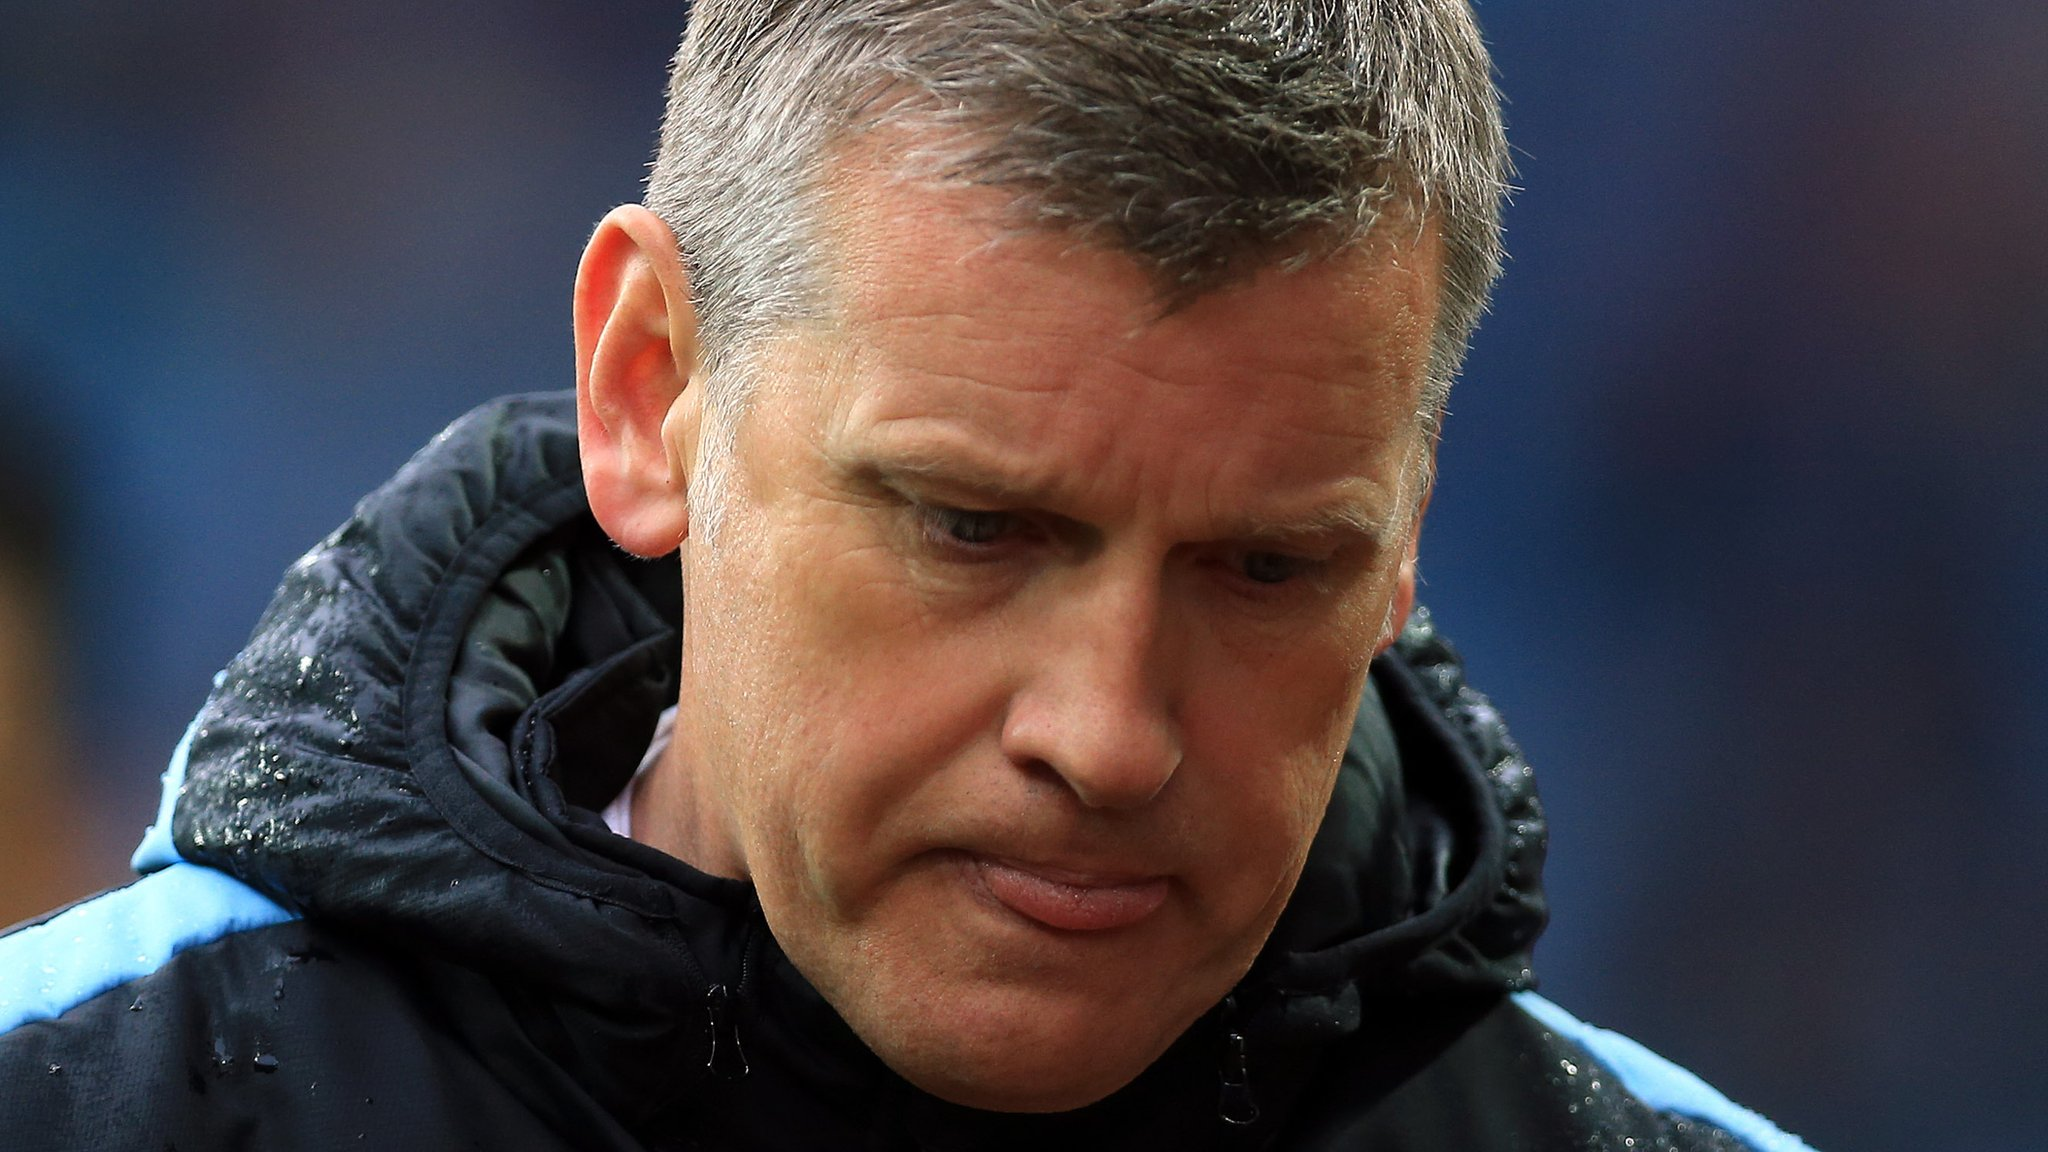 Southampton assistant Black named in corruption claims